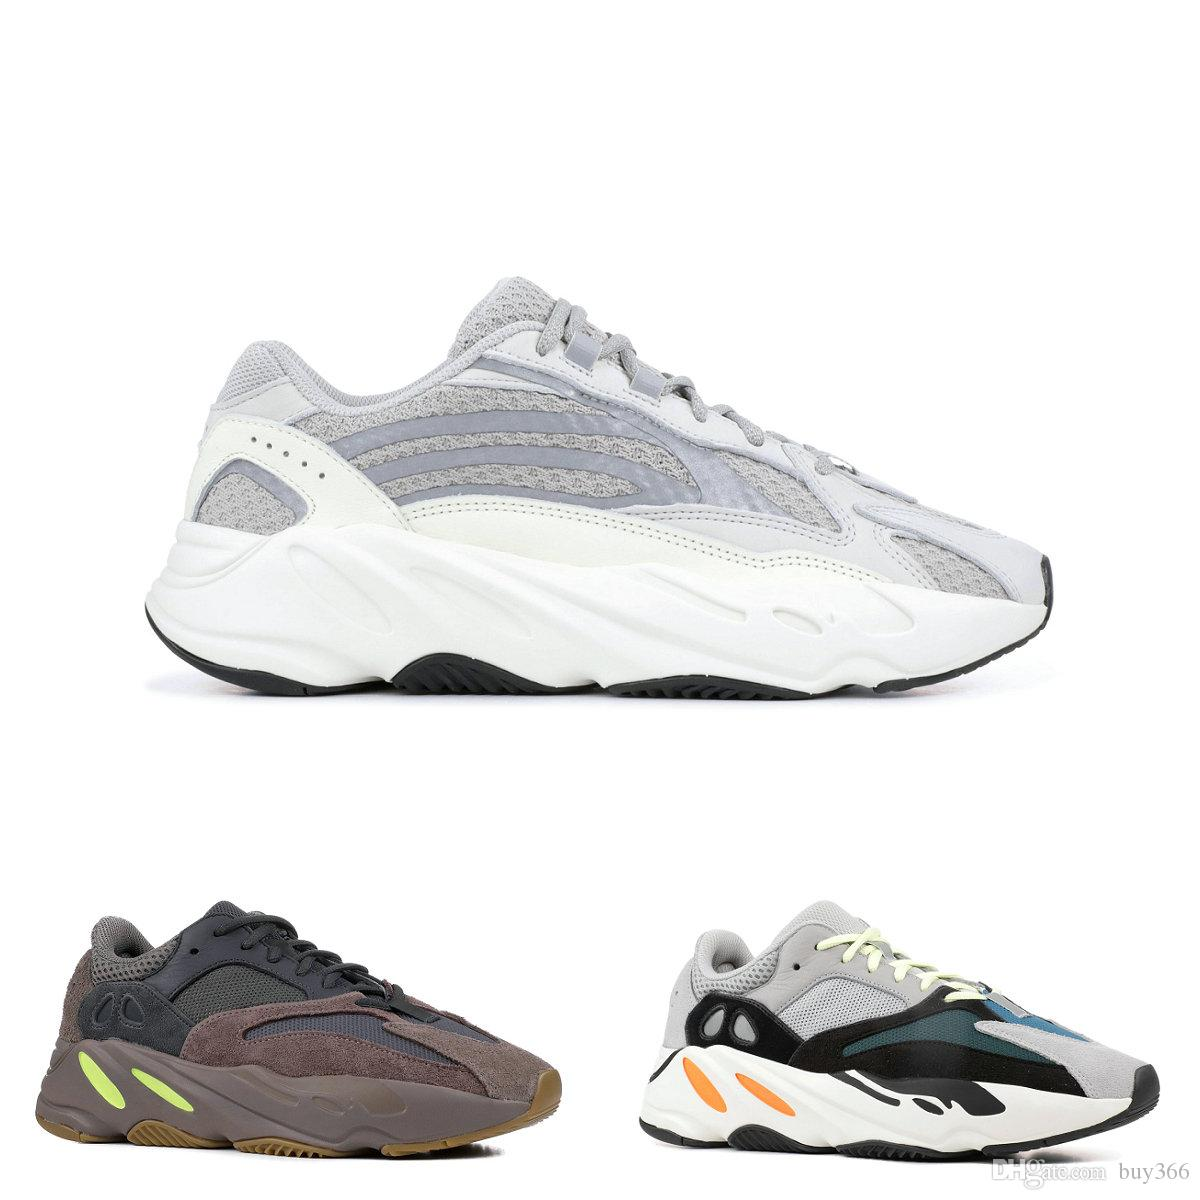 3bfd2ce73 2019 New Wave Runner 700 V2 Static 3M Material Mauve Kanye West Sneakers  Men Women Designer Running Shoes Sport With Box Size US5 13 Running Shoes  Men From ...